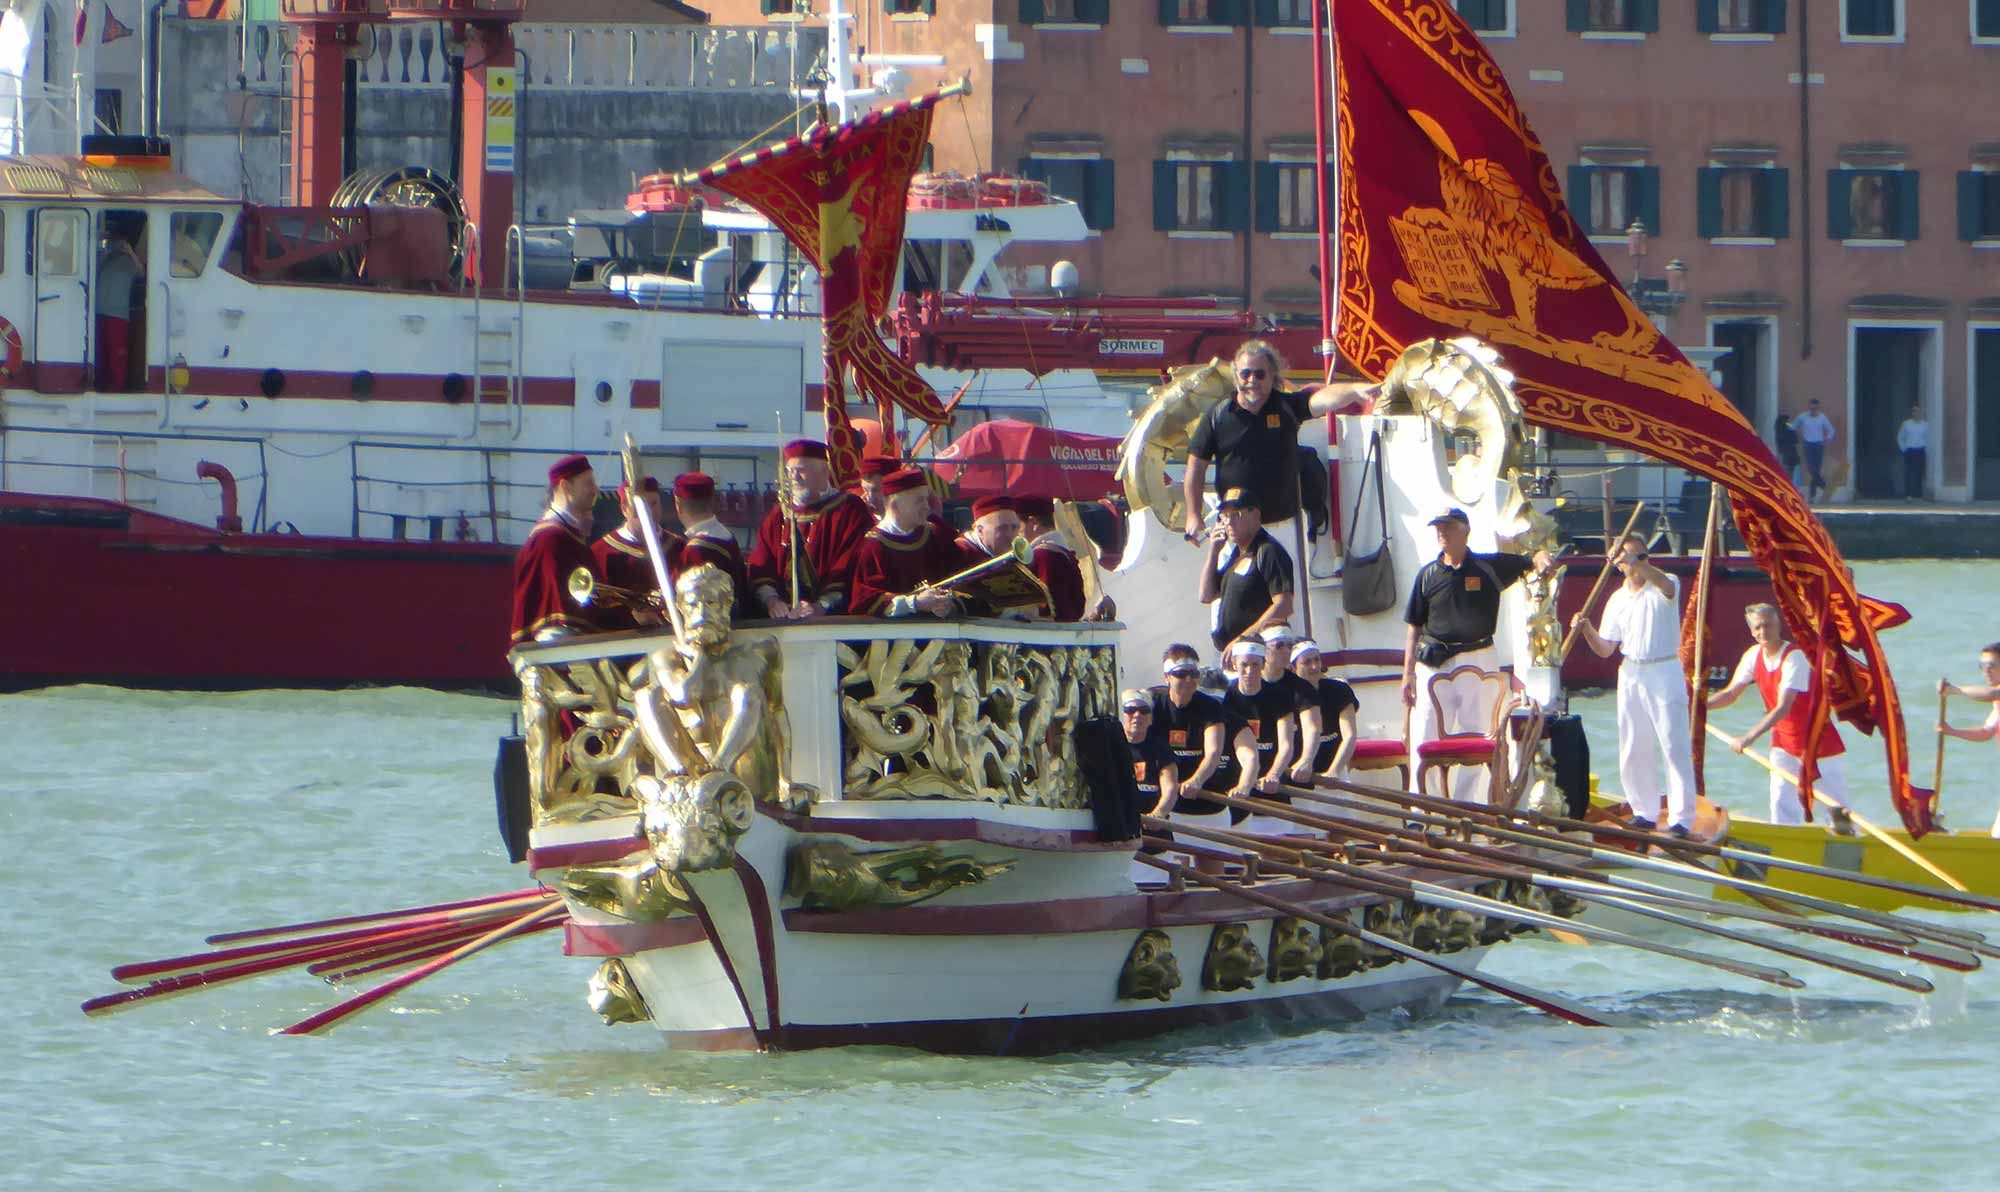 Festa della Sensa, Venice Marriage to the Sea